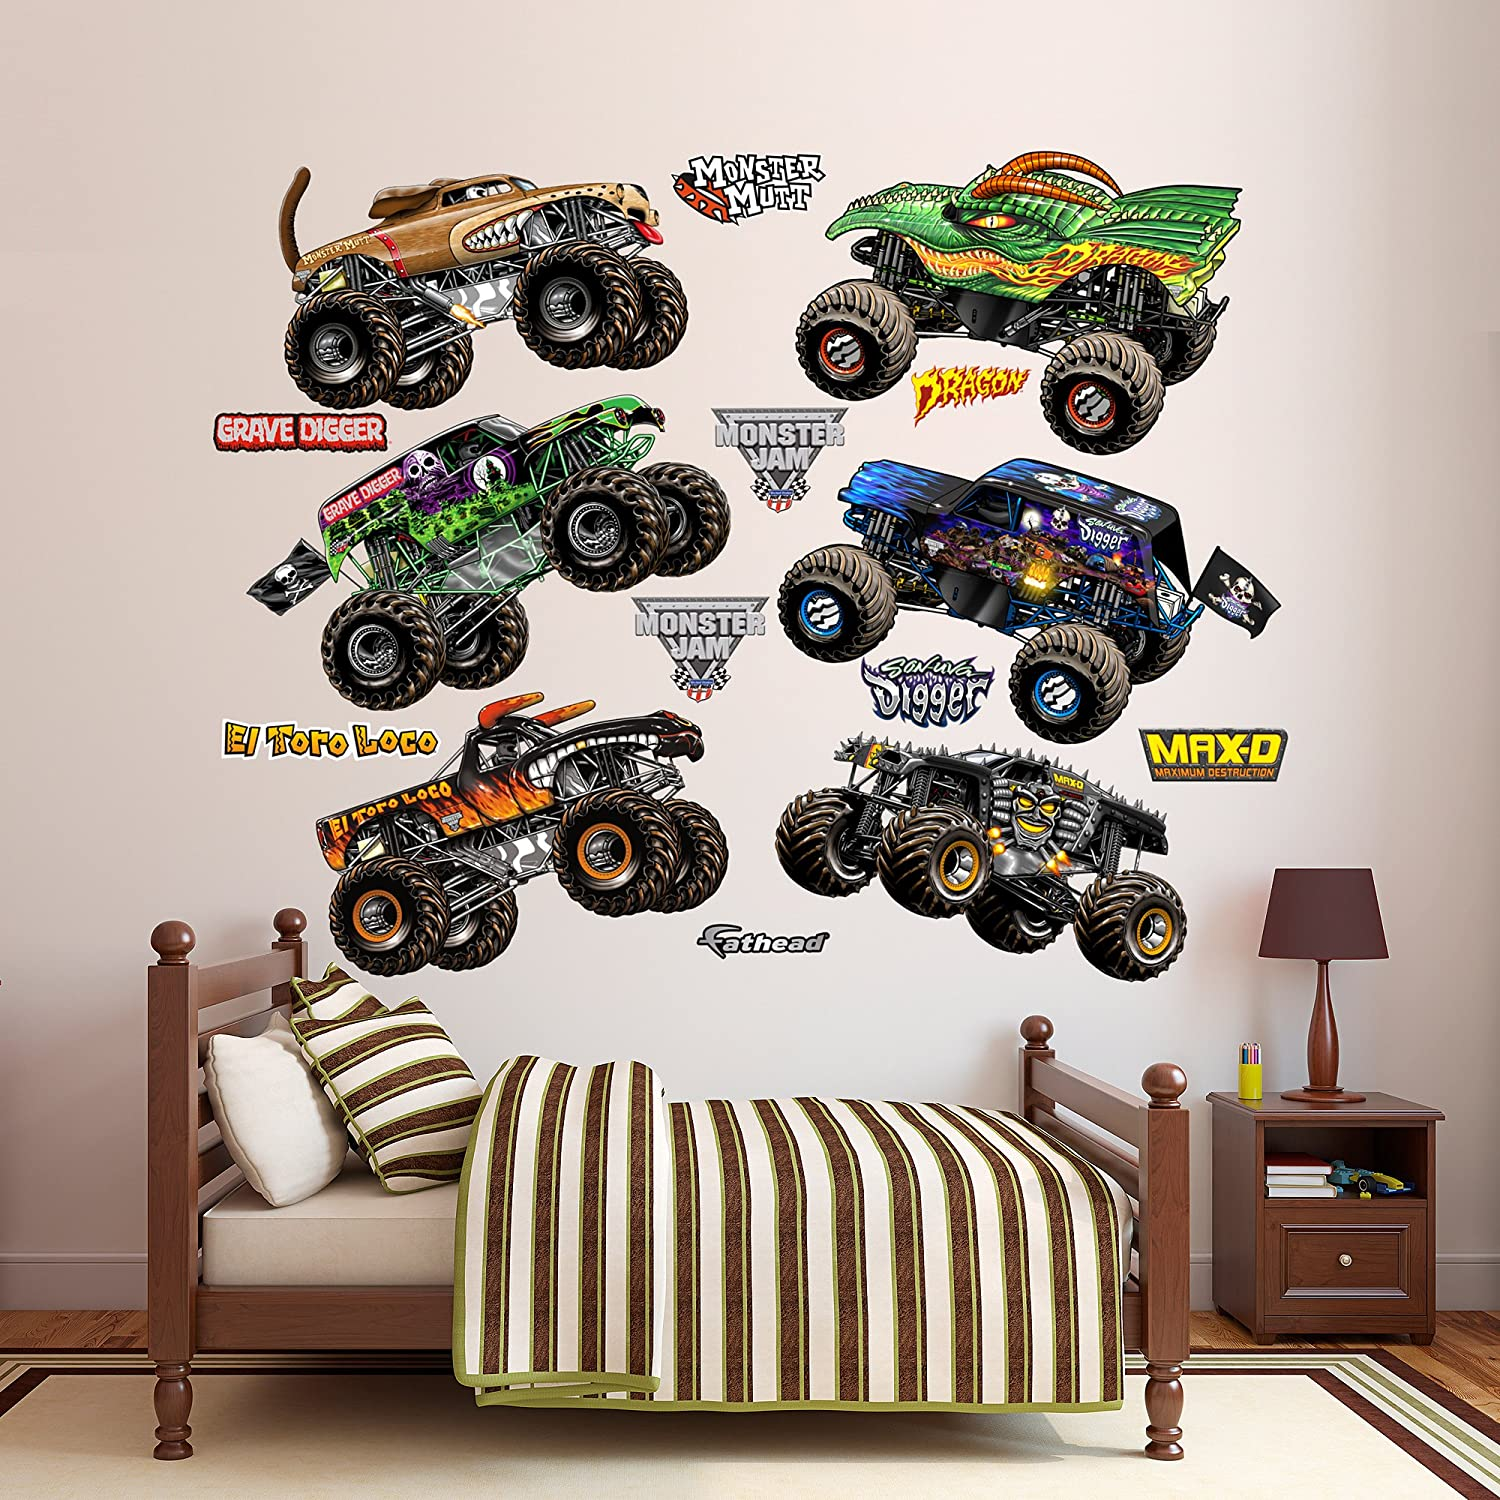 Fathead Cartoon Monster Jam Trucks Collection Vinyl Decals - 1053-00029